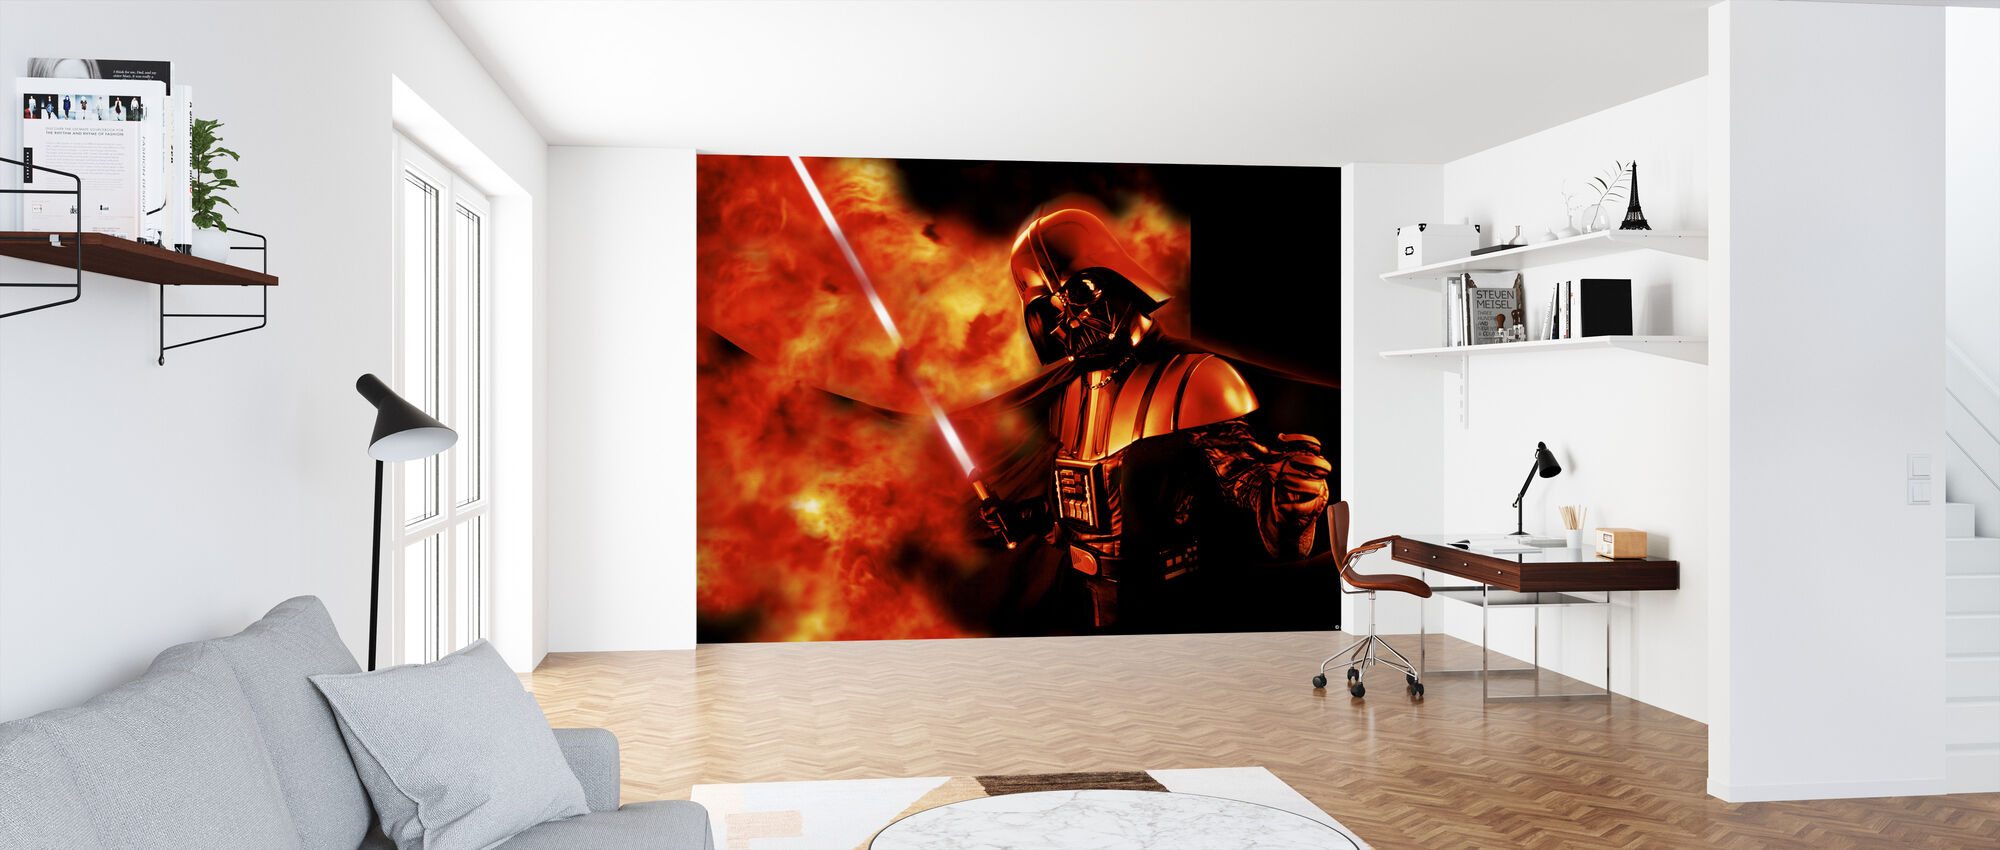 Star Wars - Darth Vader eksplosjon 2 - Tapet - Kontor